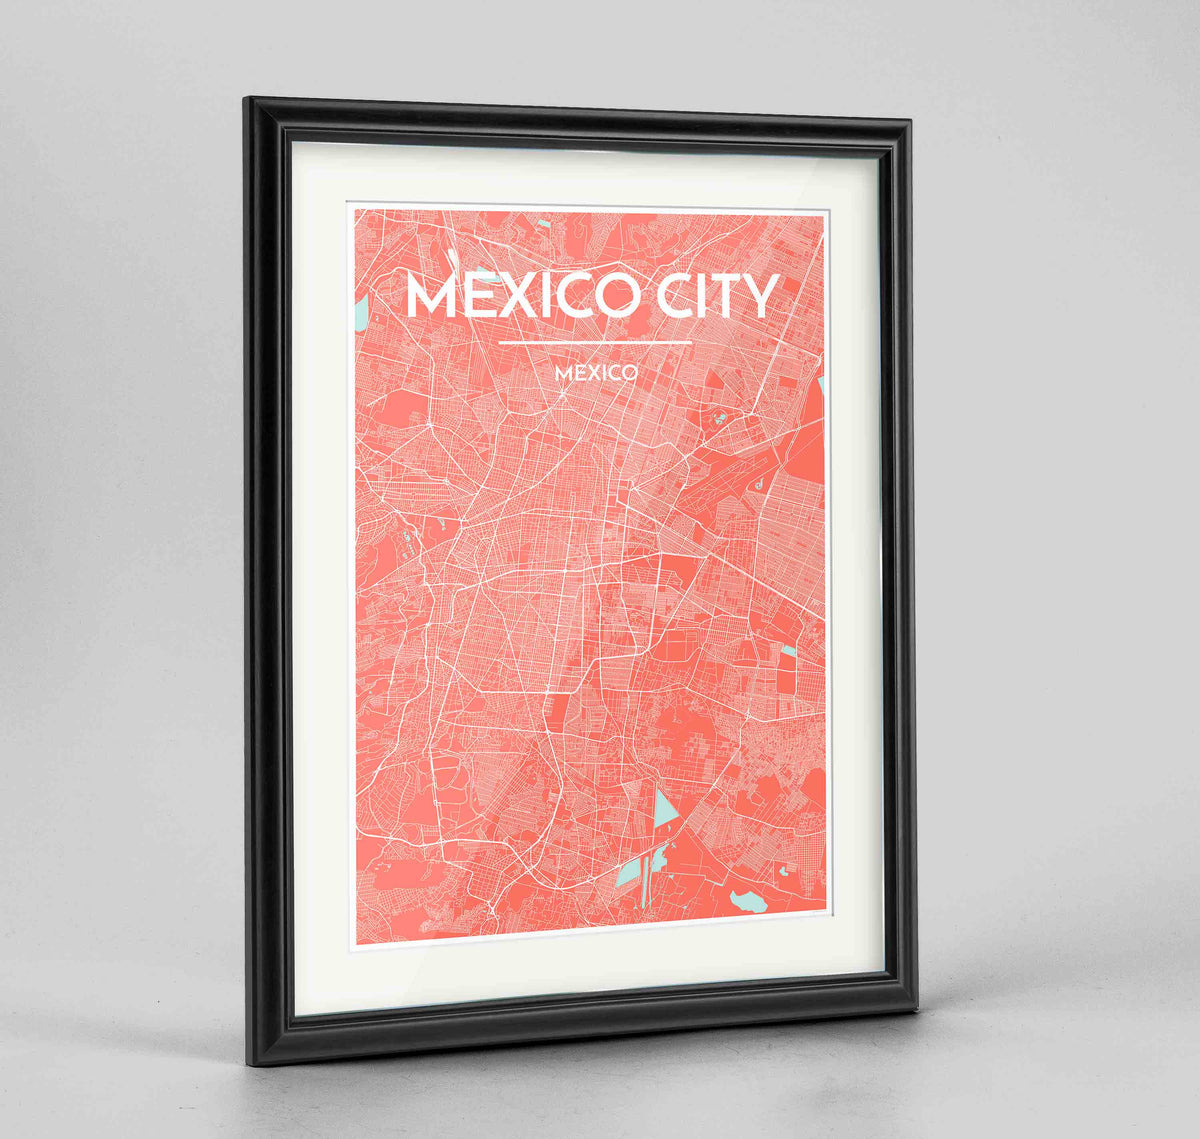 "Framed Mexico City Map Art Print 24x36"" Traditional Black frame Point Two Design Group"